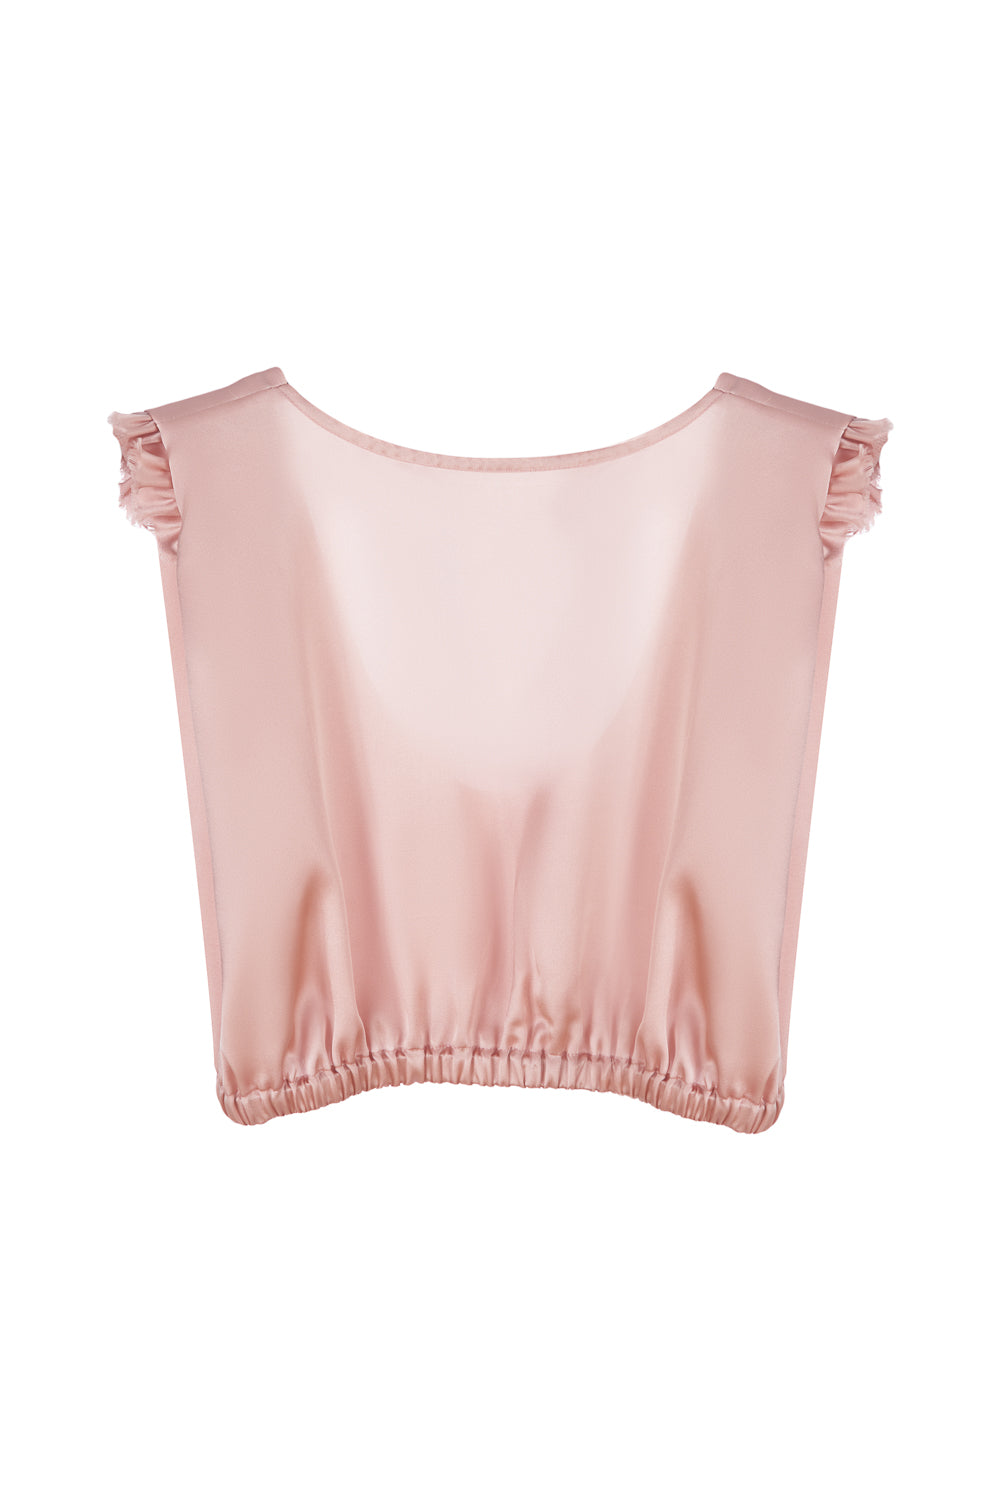 Crop Top With Ruffles - SILKSISTERSvictory